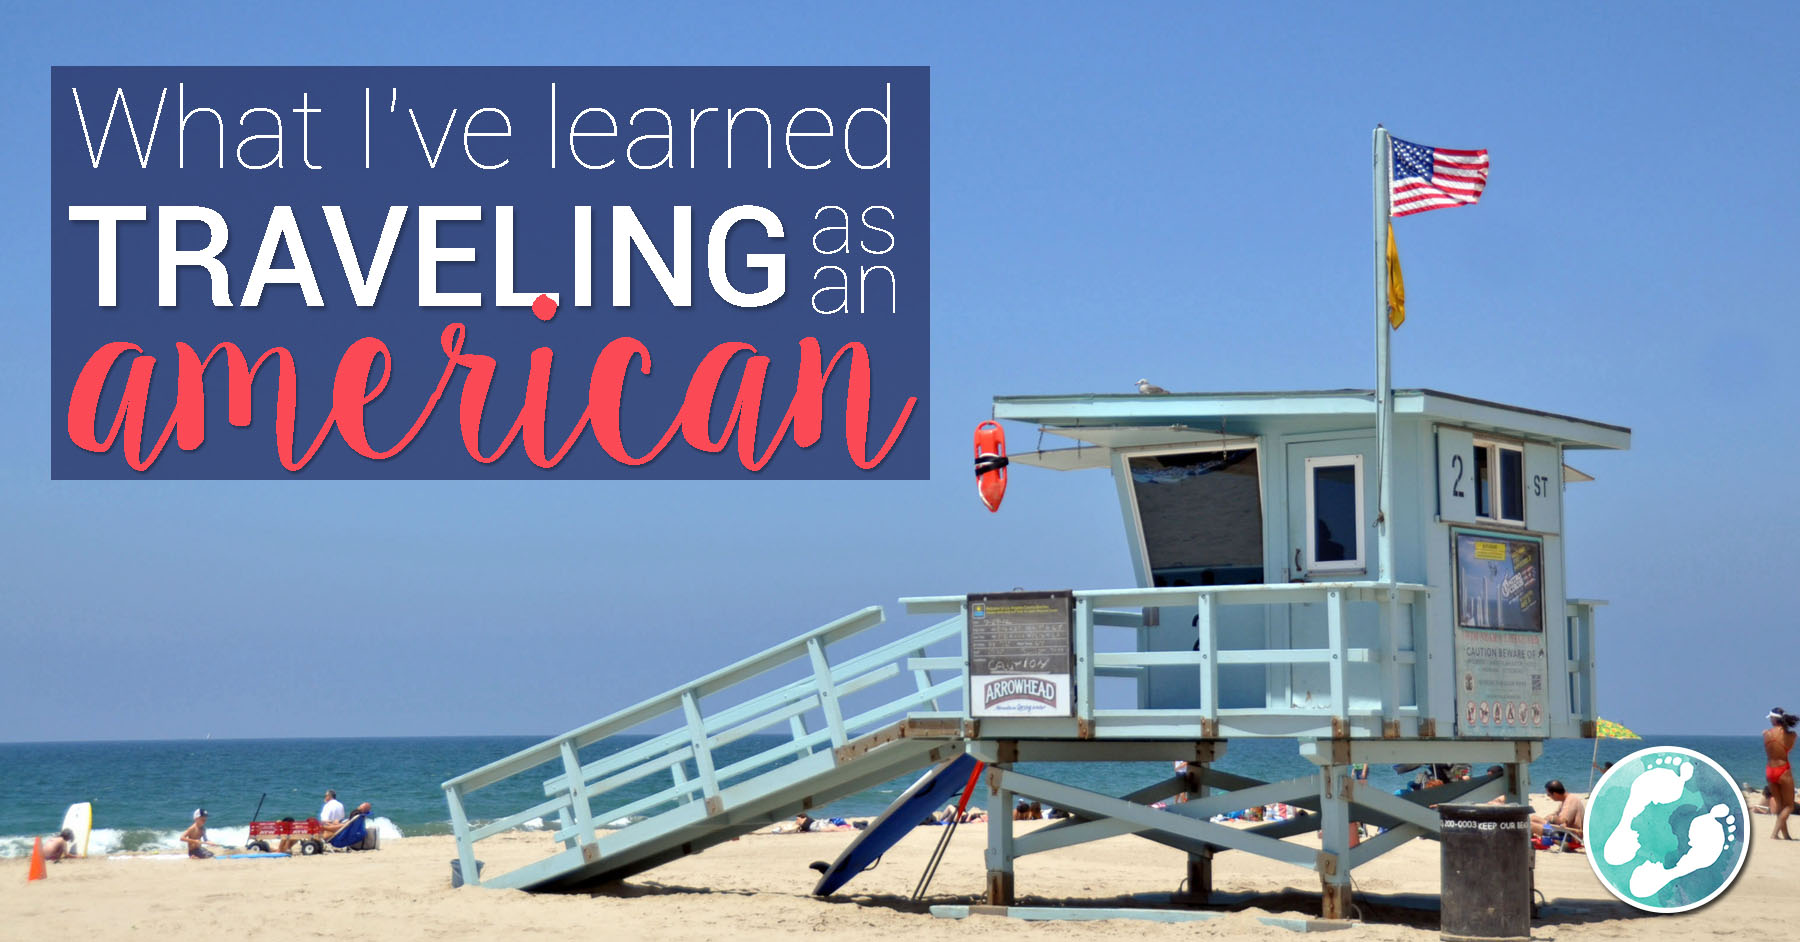 What I've learned traveling as an American